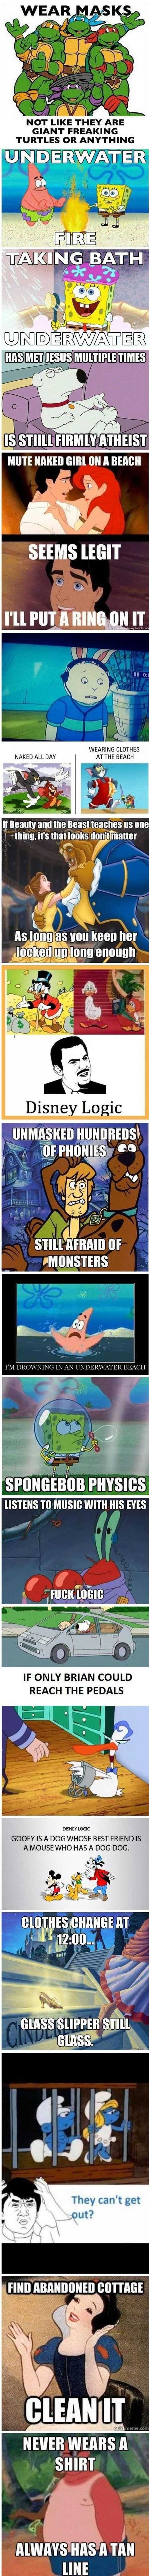 Cartoon logic. I wonder about the Spongebob stuff all the time.